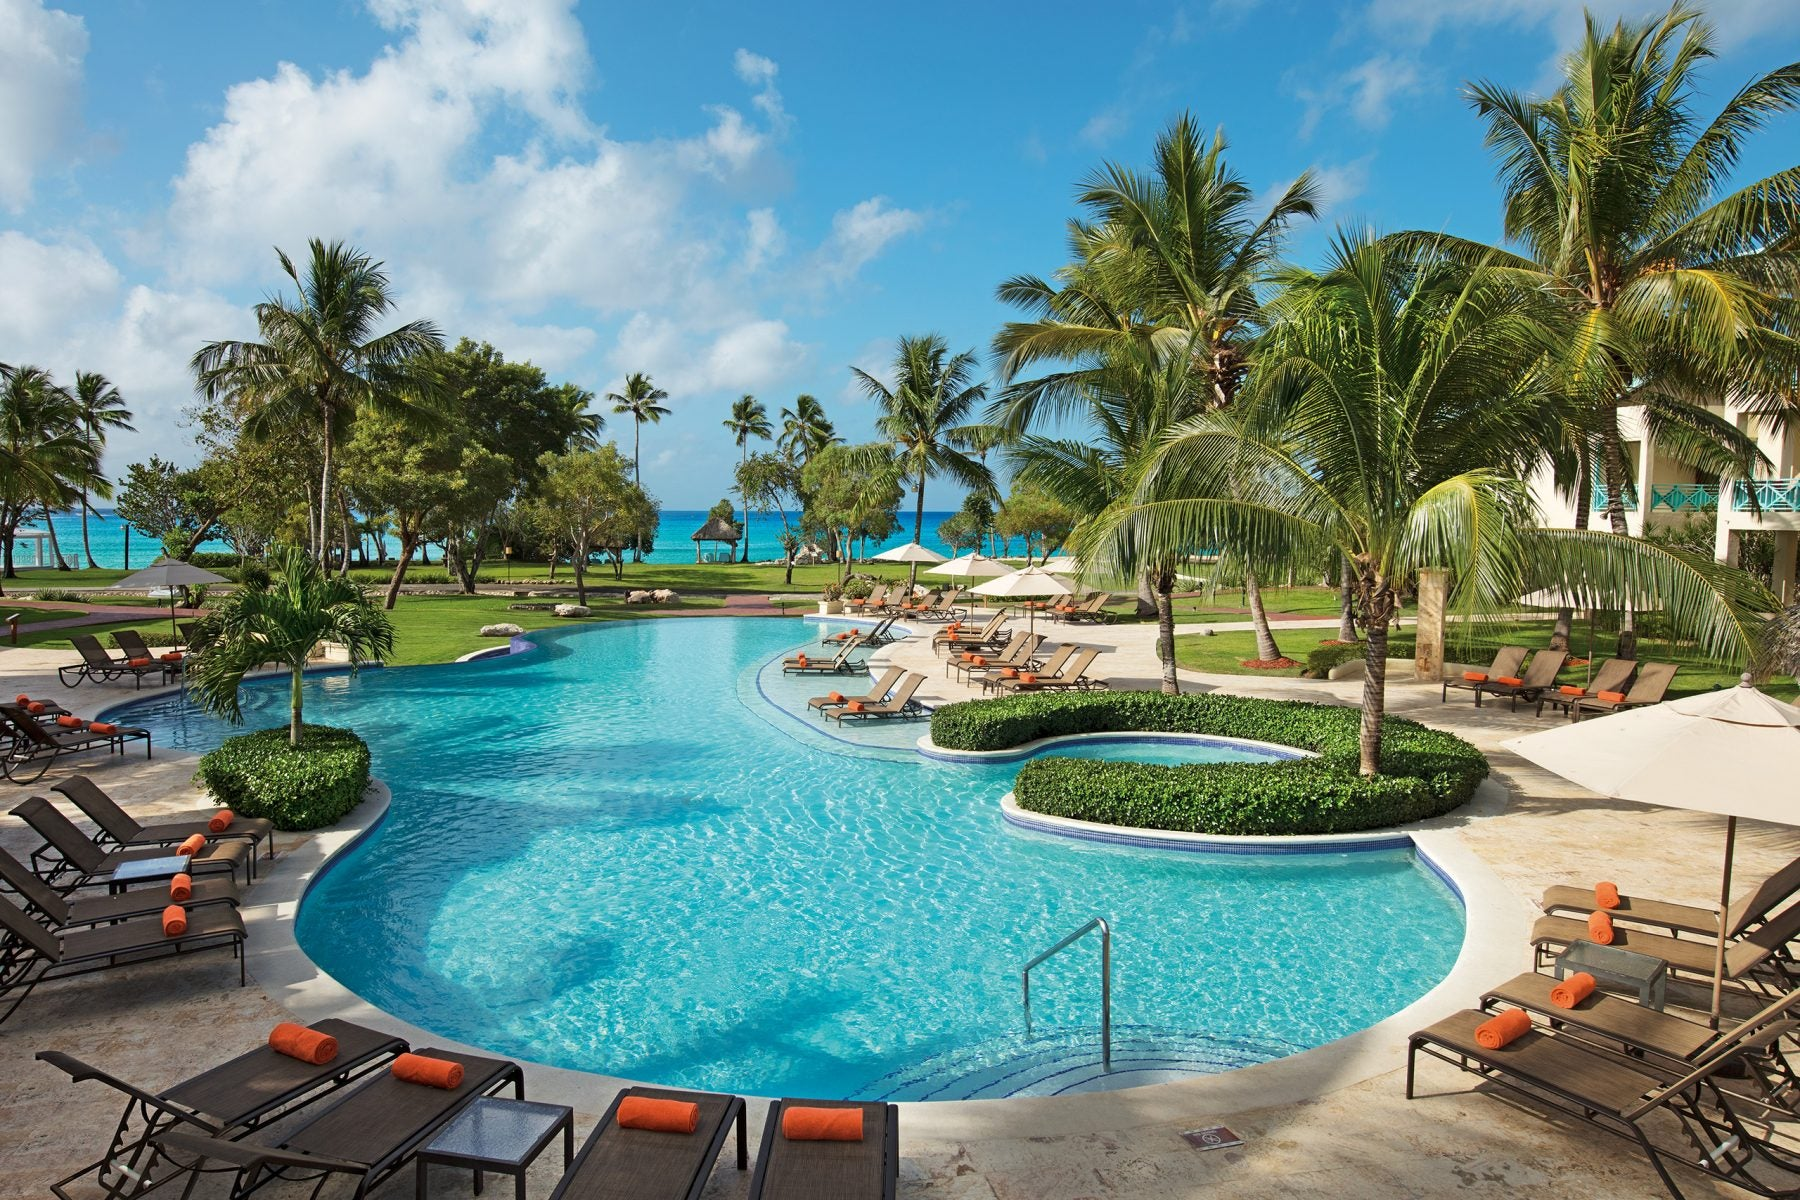 Hilton Adding 10 All-Inclusive Resorts in the Caribbean and Latin America to Its Portfolio (2 by the End of the Year!)